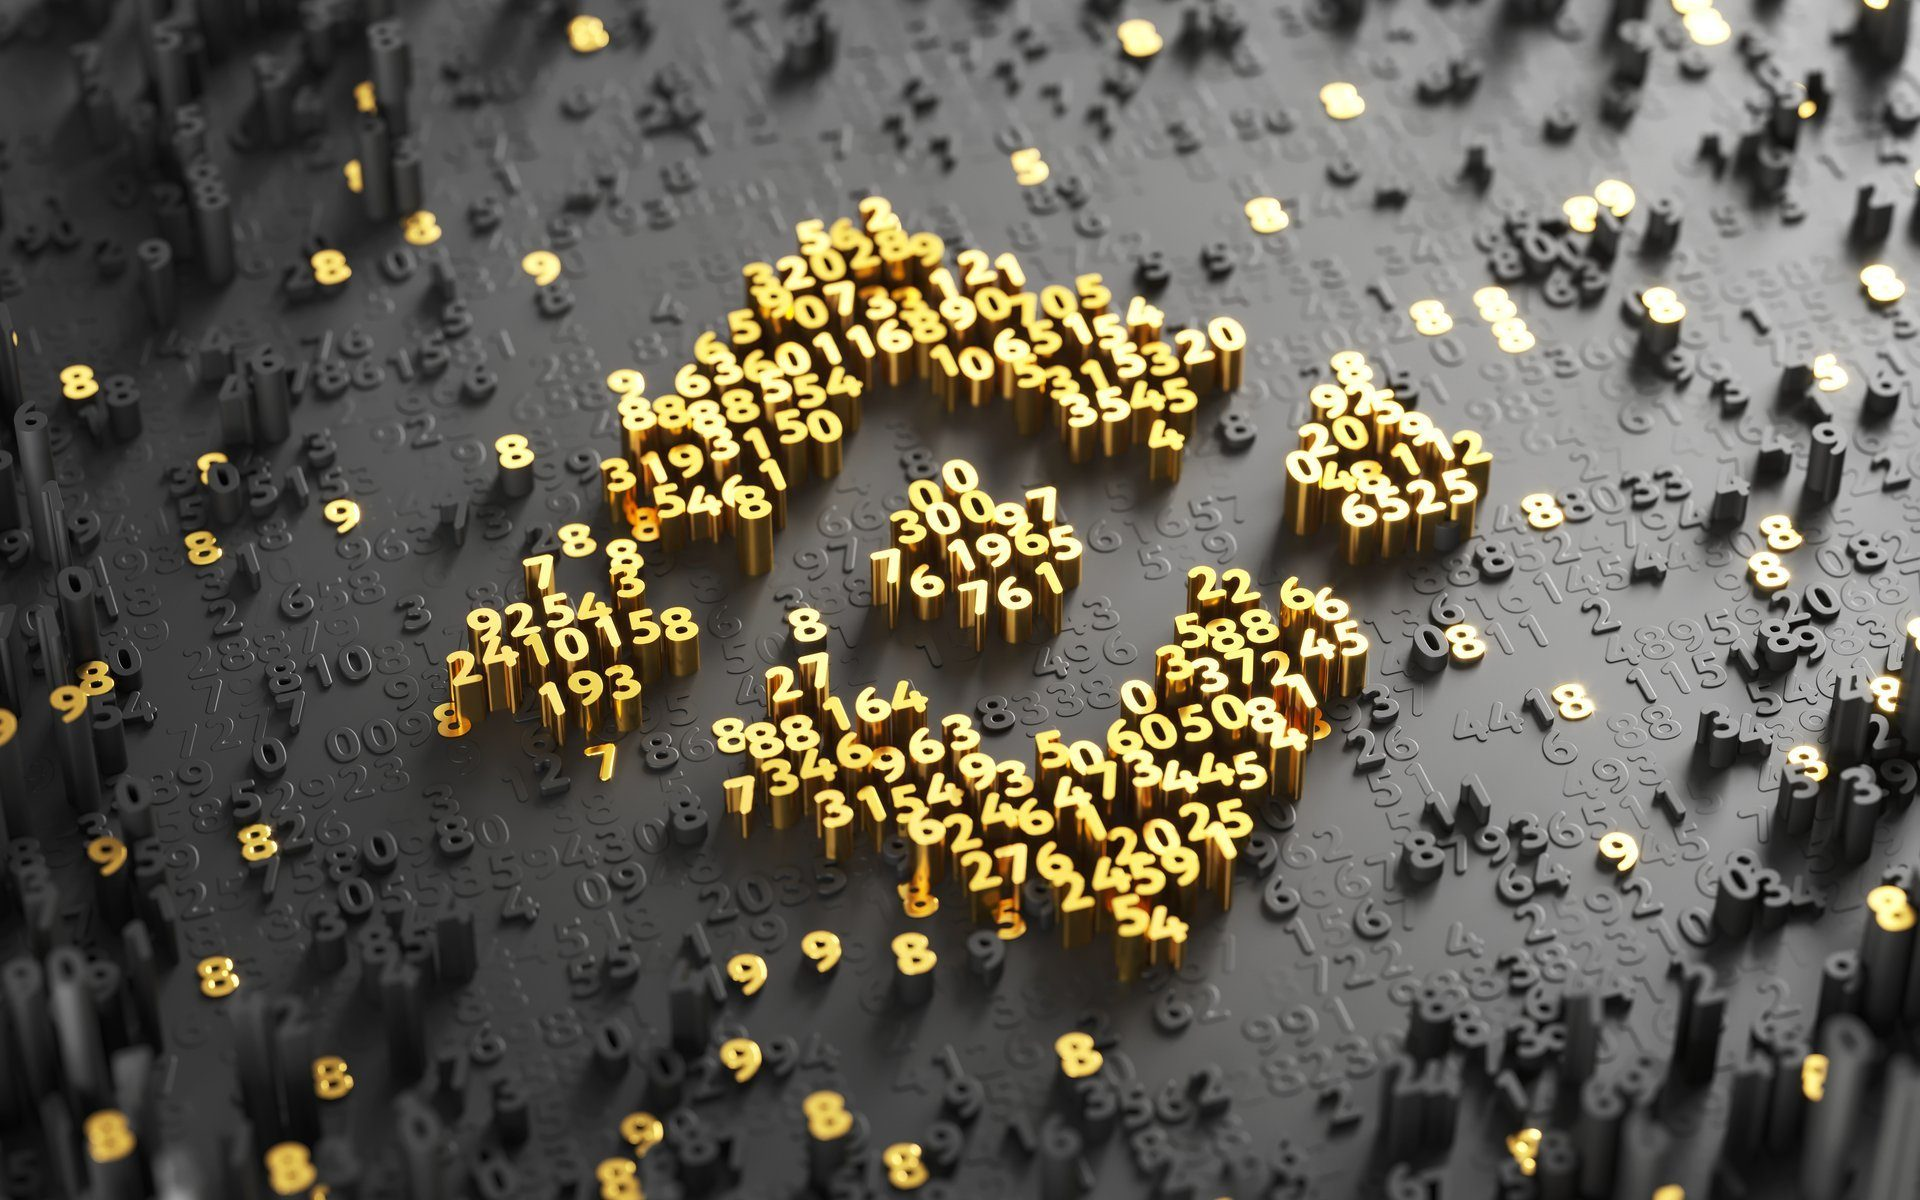 Binance CEO Year Review: BNB With Over 50 Use Cases